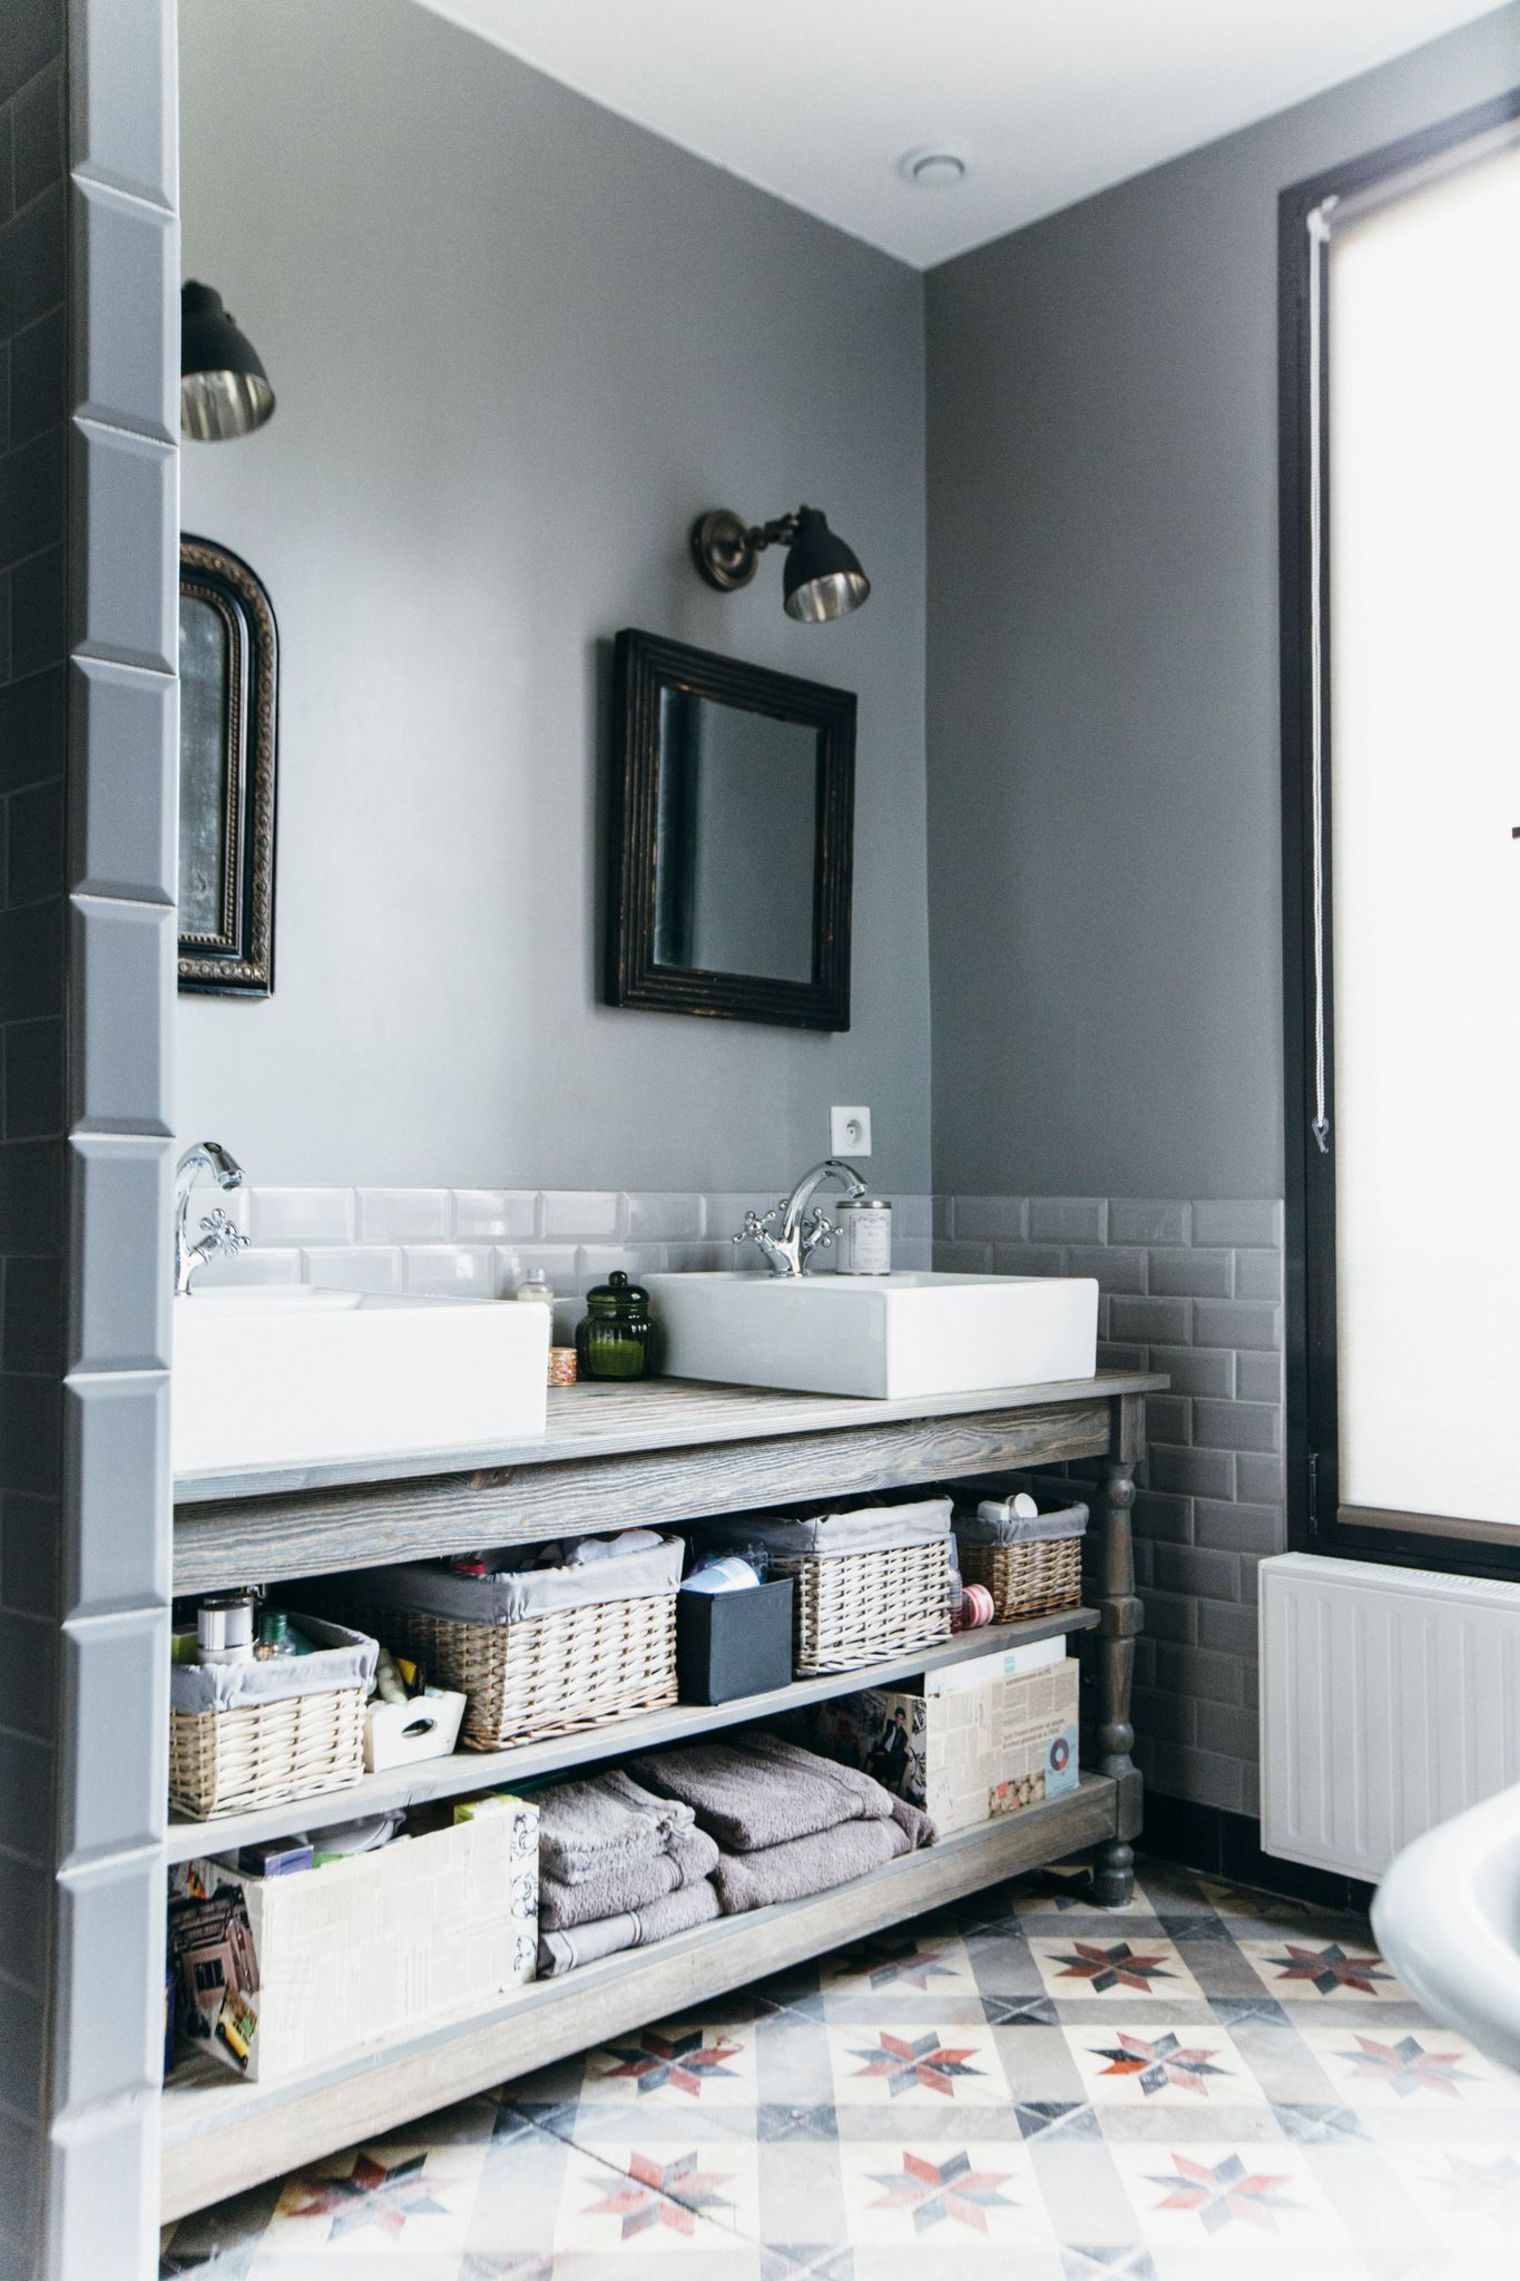 bathroom salle de bains carreaux ciment bathroom salle de bains pinterest ciment. Black Bedroom Furniture Sets. Home Design Ideas